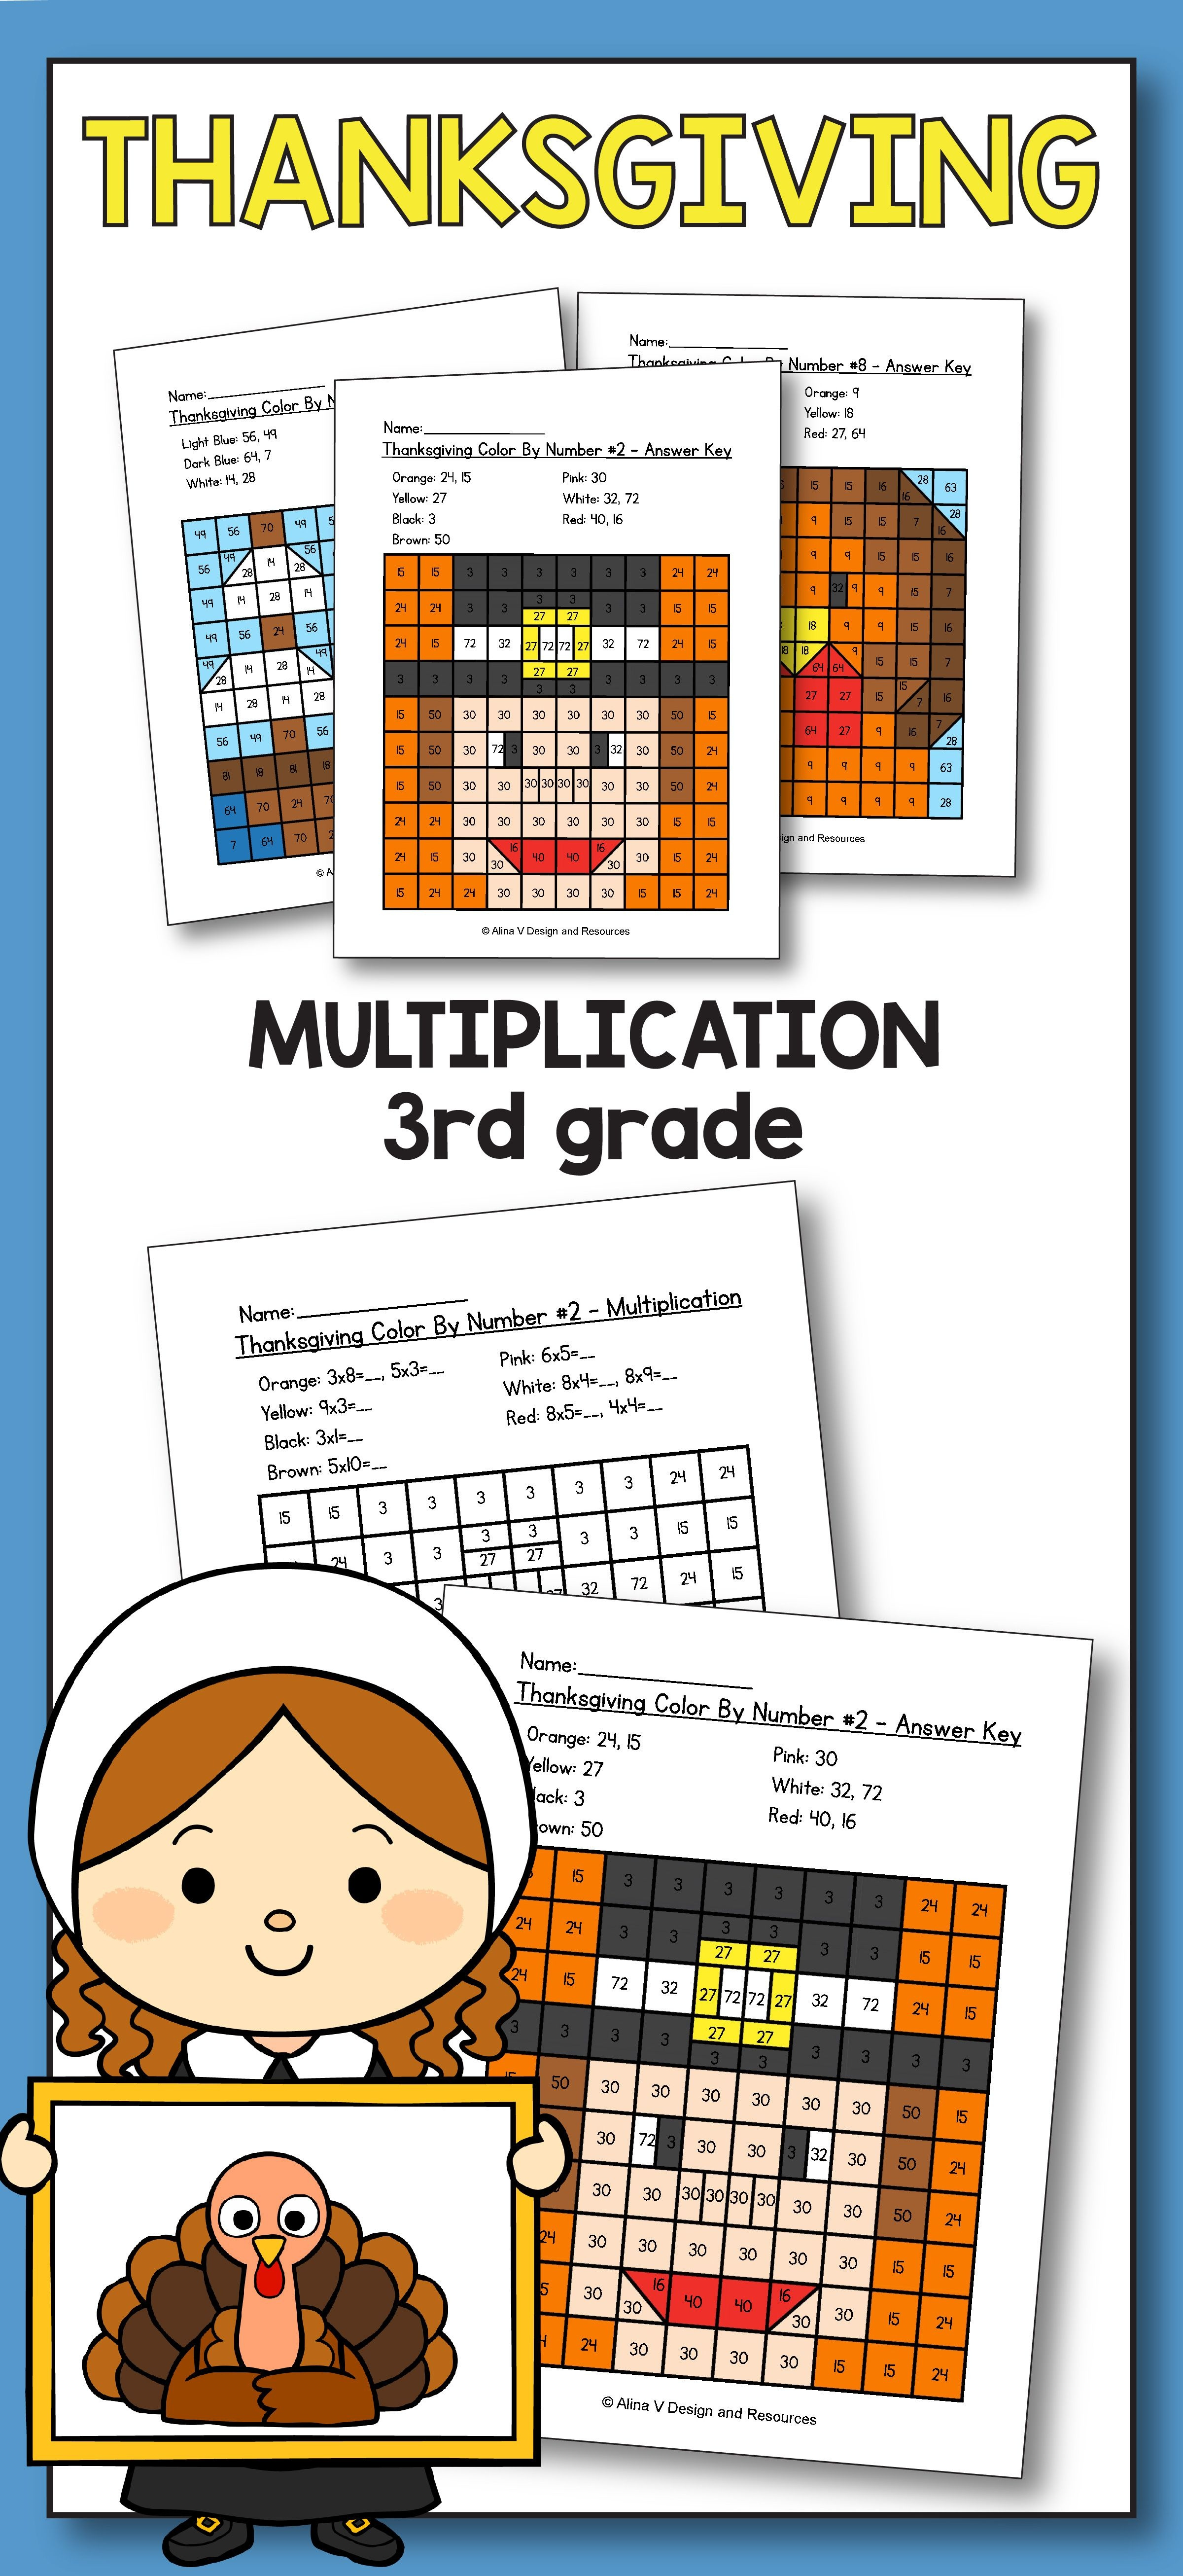 Free Printable Thanksgiving Math Worksheets For 3rd Grade